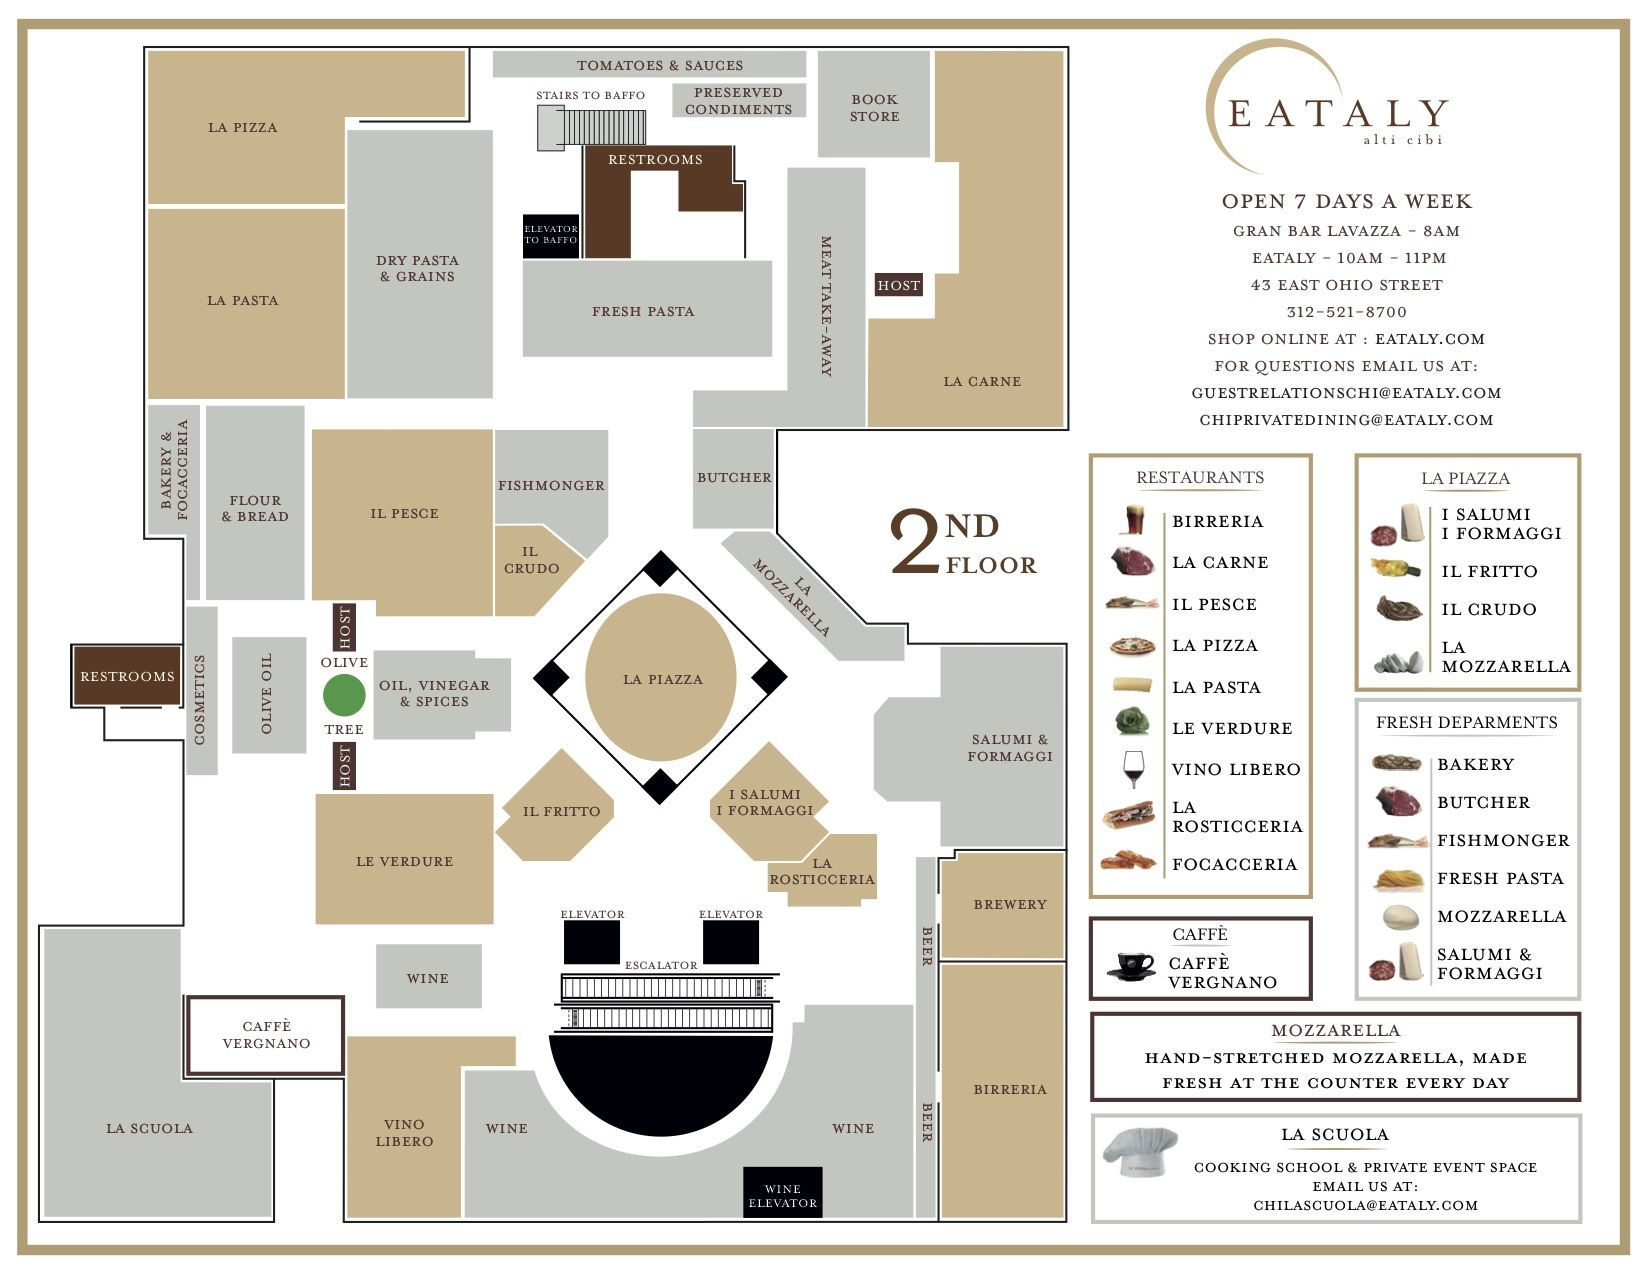 eataly chicago a fun experience [ 1650 x 1275 Pixel ]